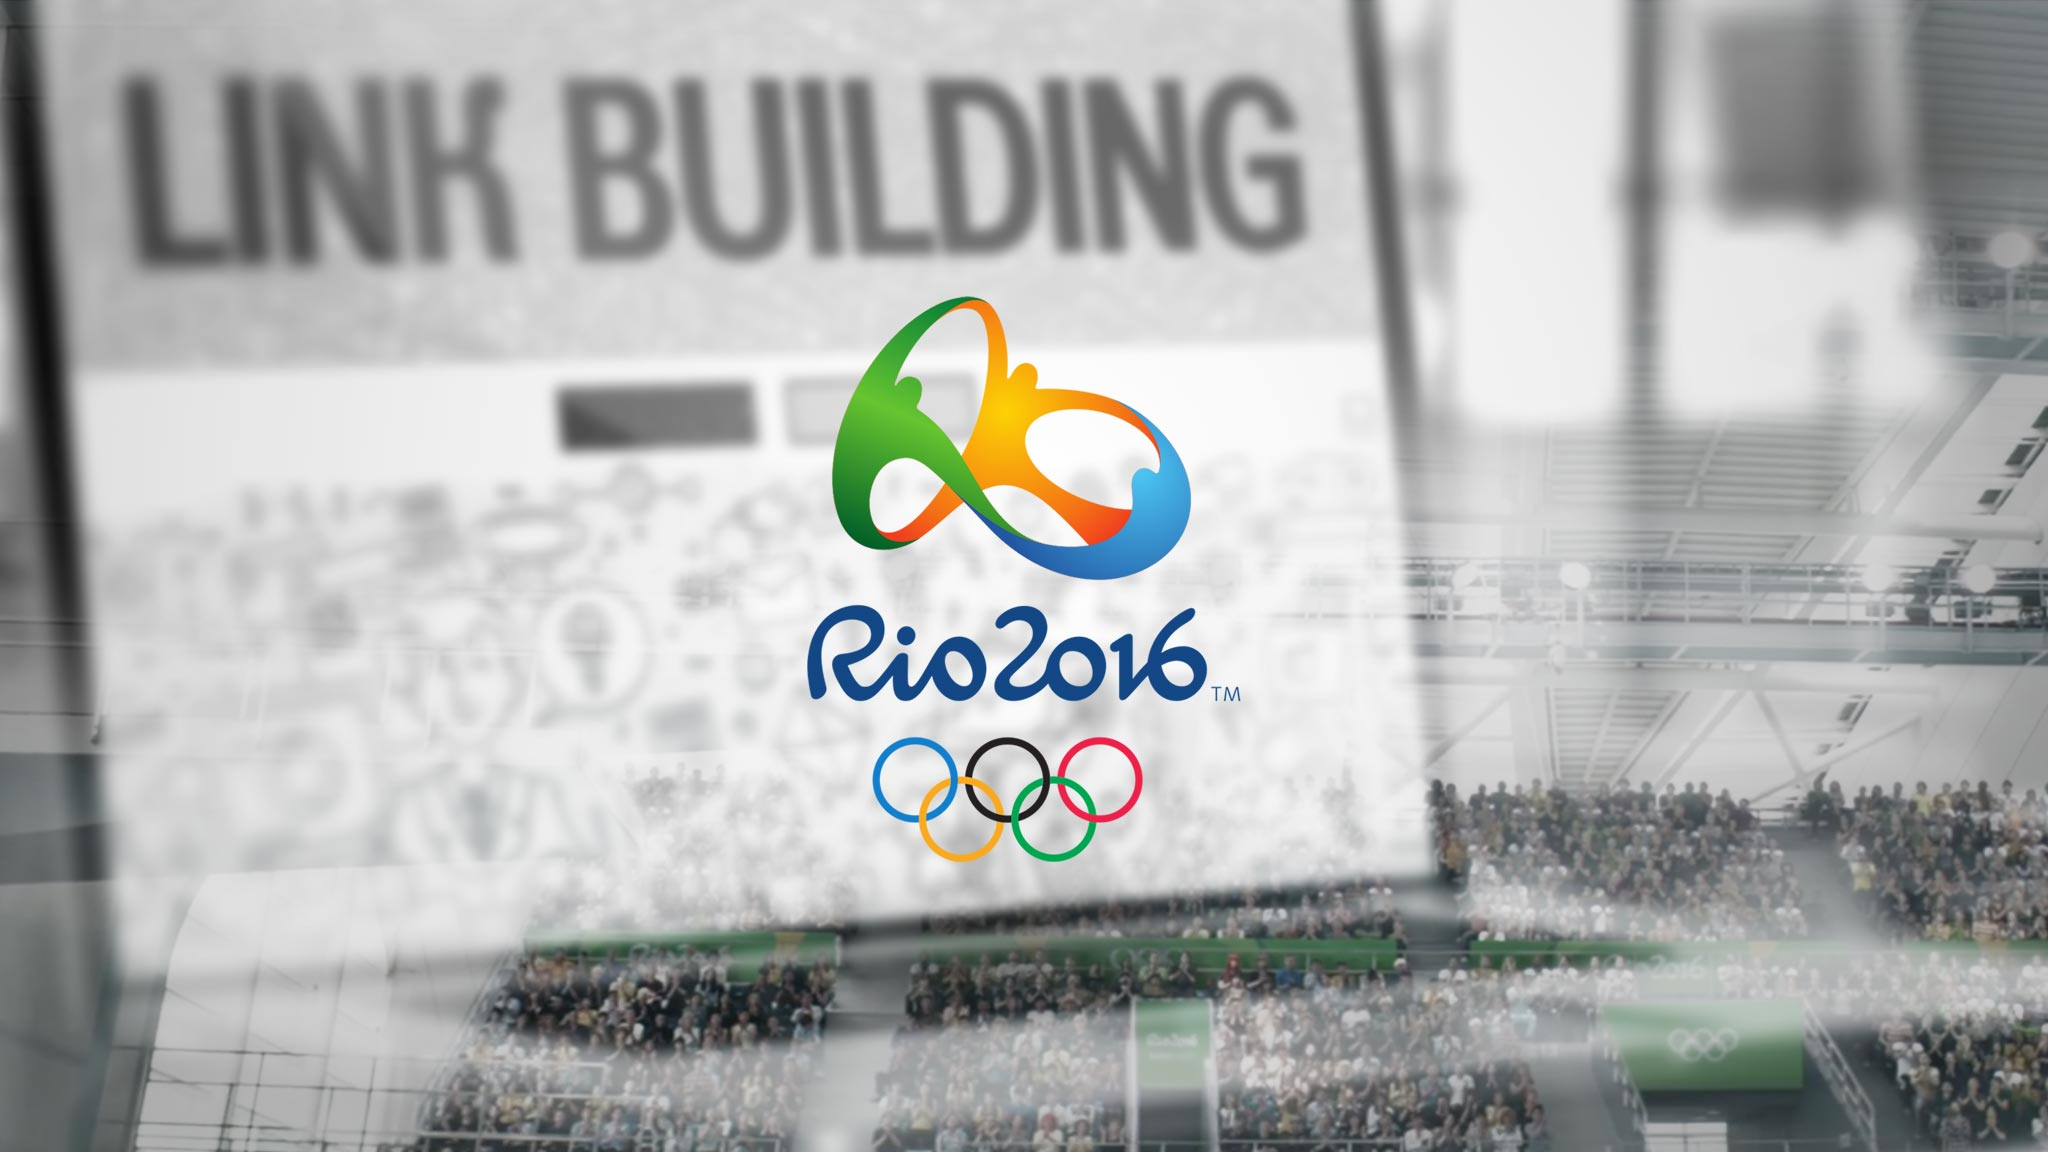 6 winning tips on link building for theOlympics